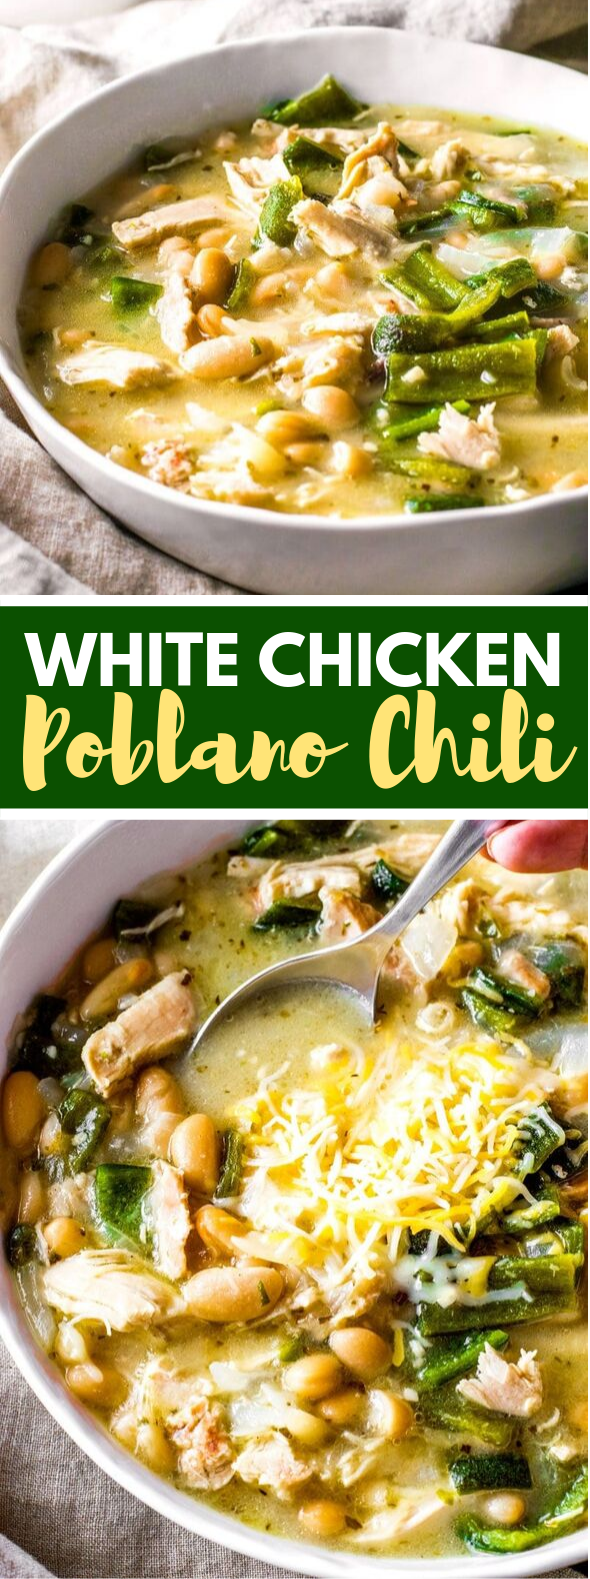 WHITE CHICKEN CHILI #dinner #comfortfood